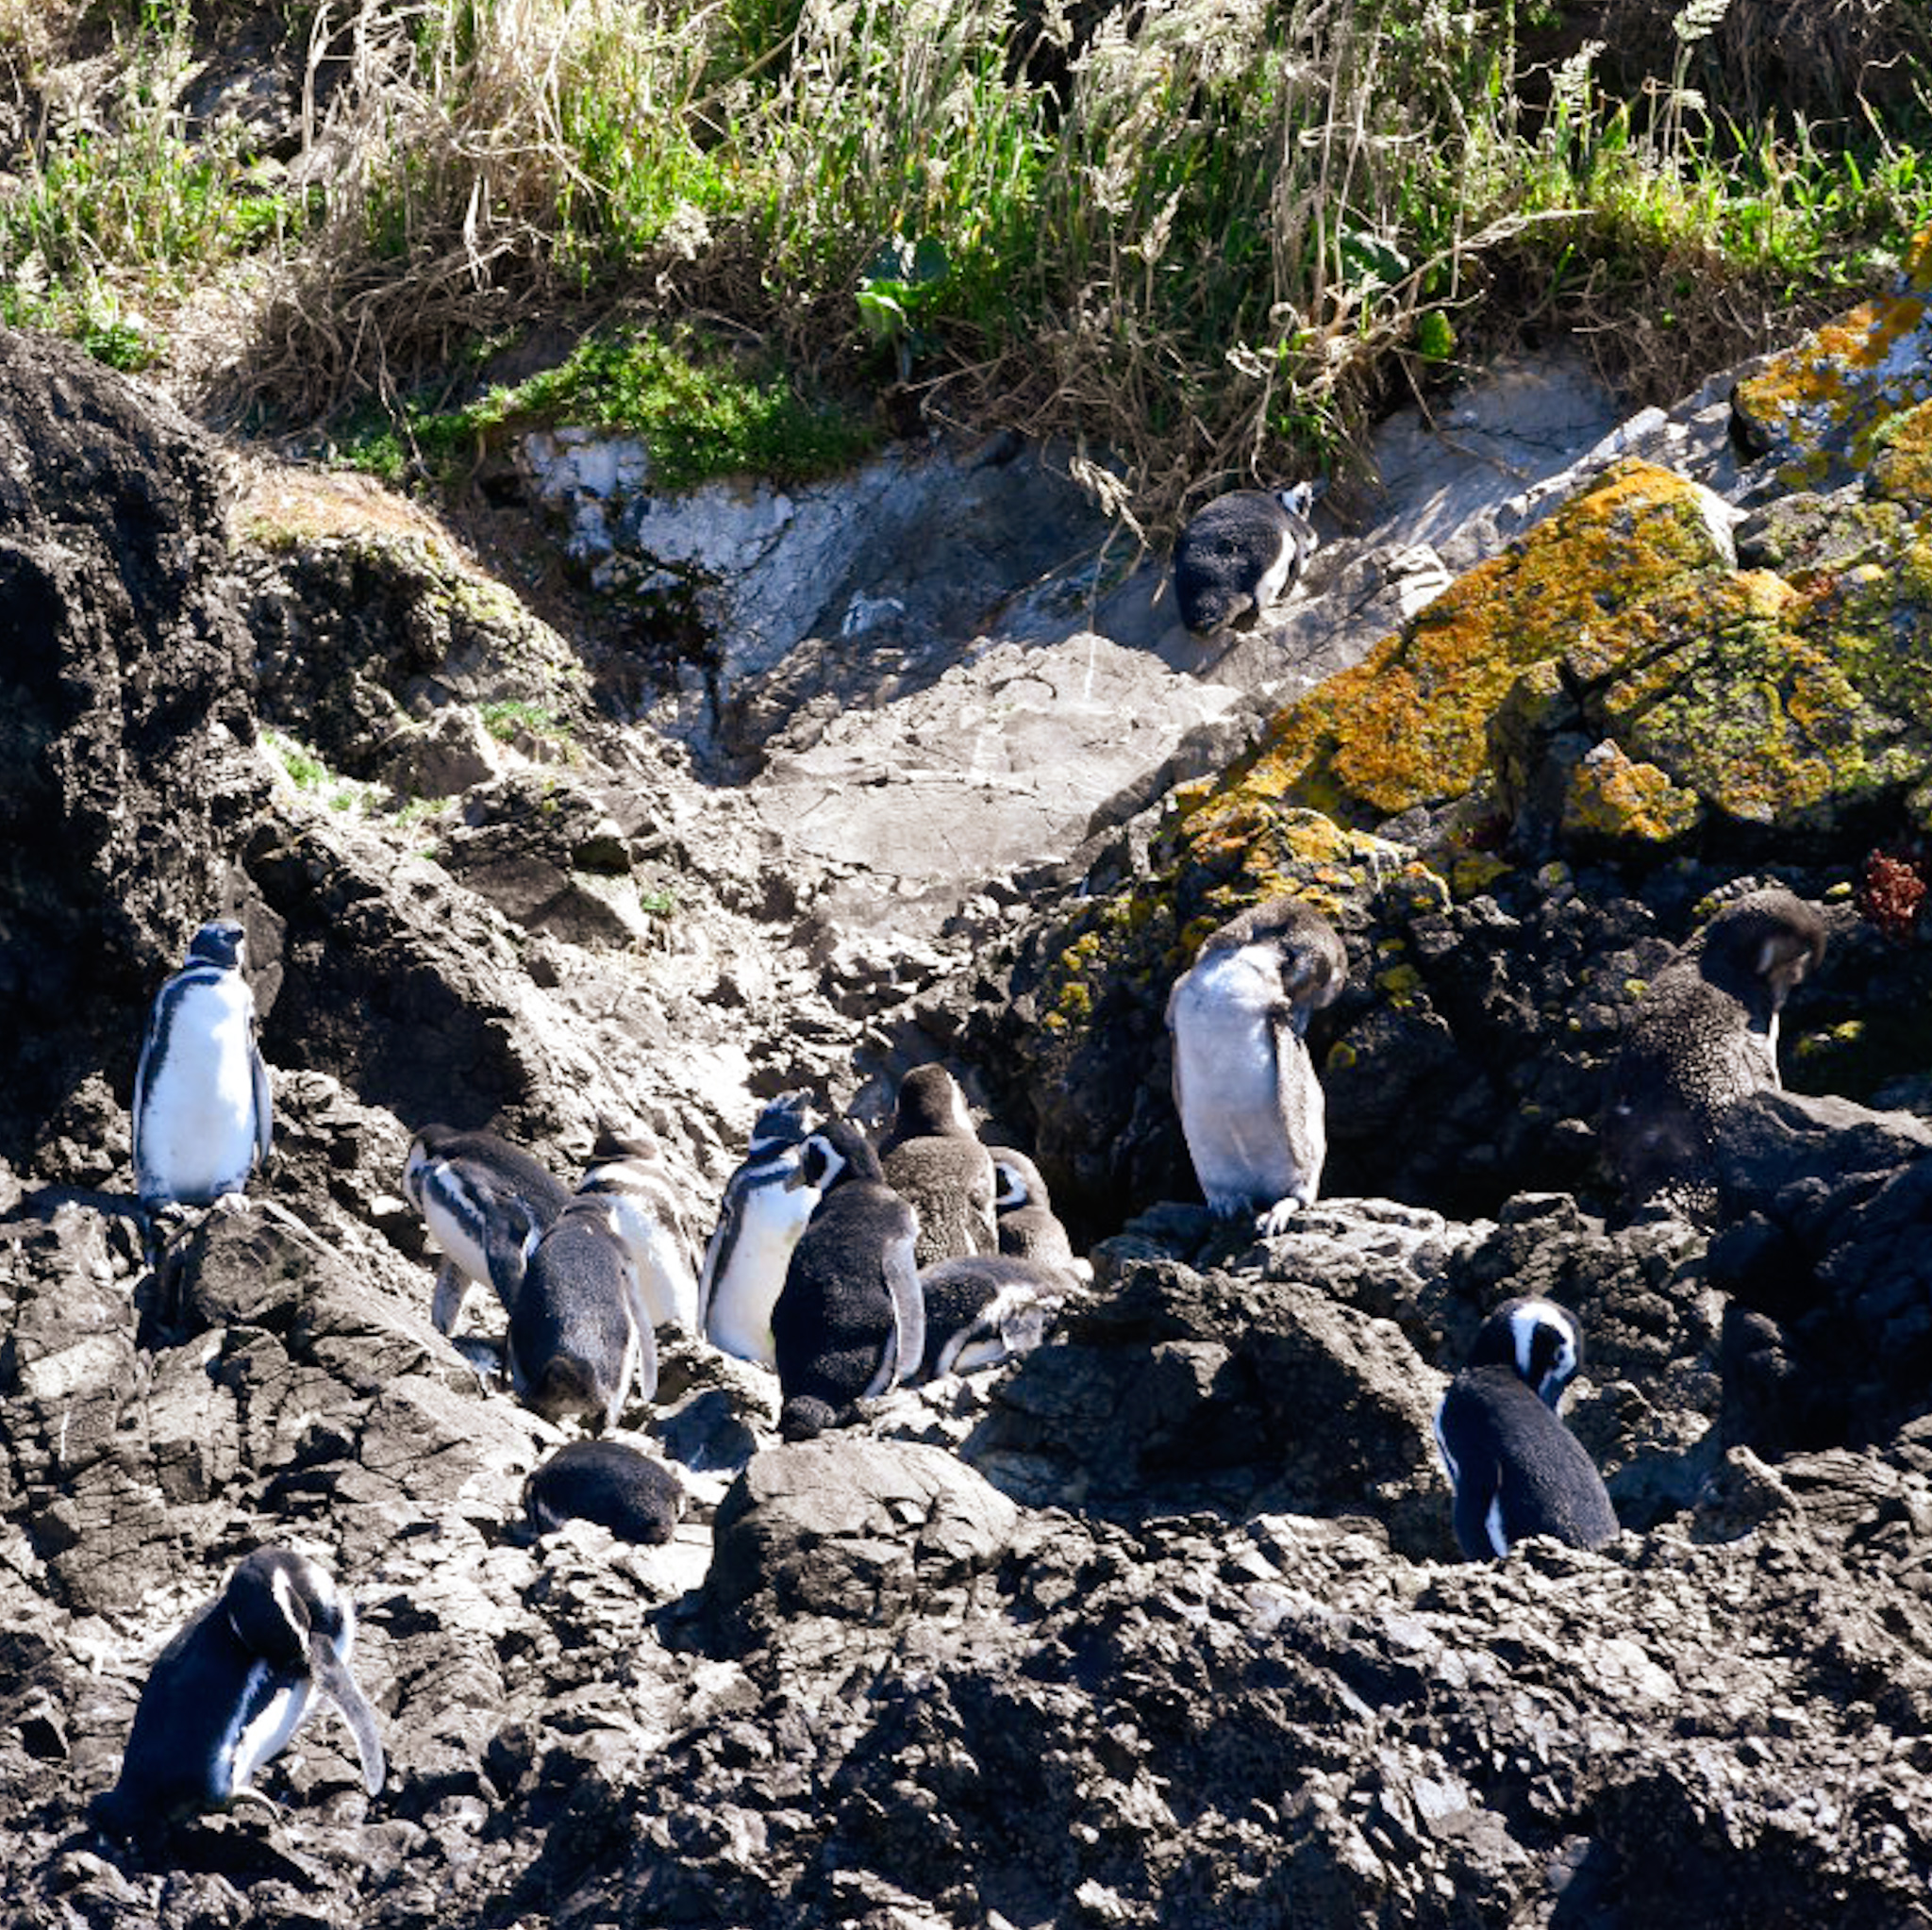 Chiloe penguins